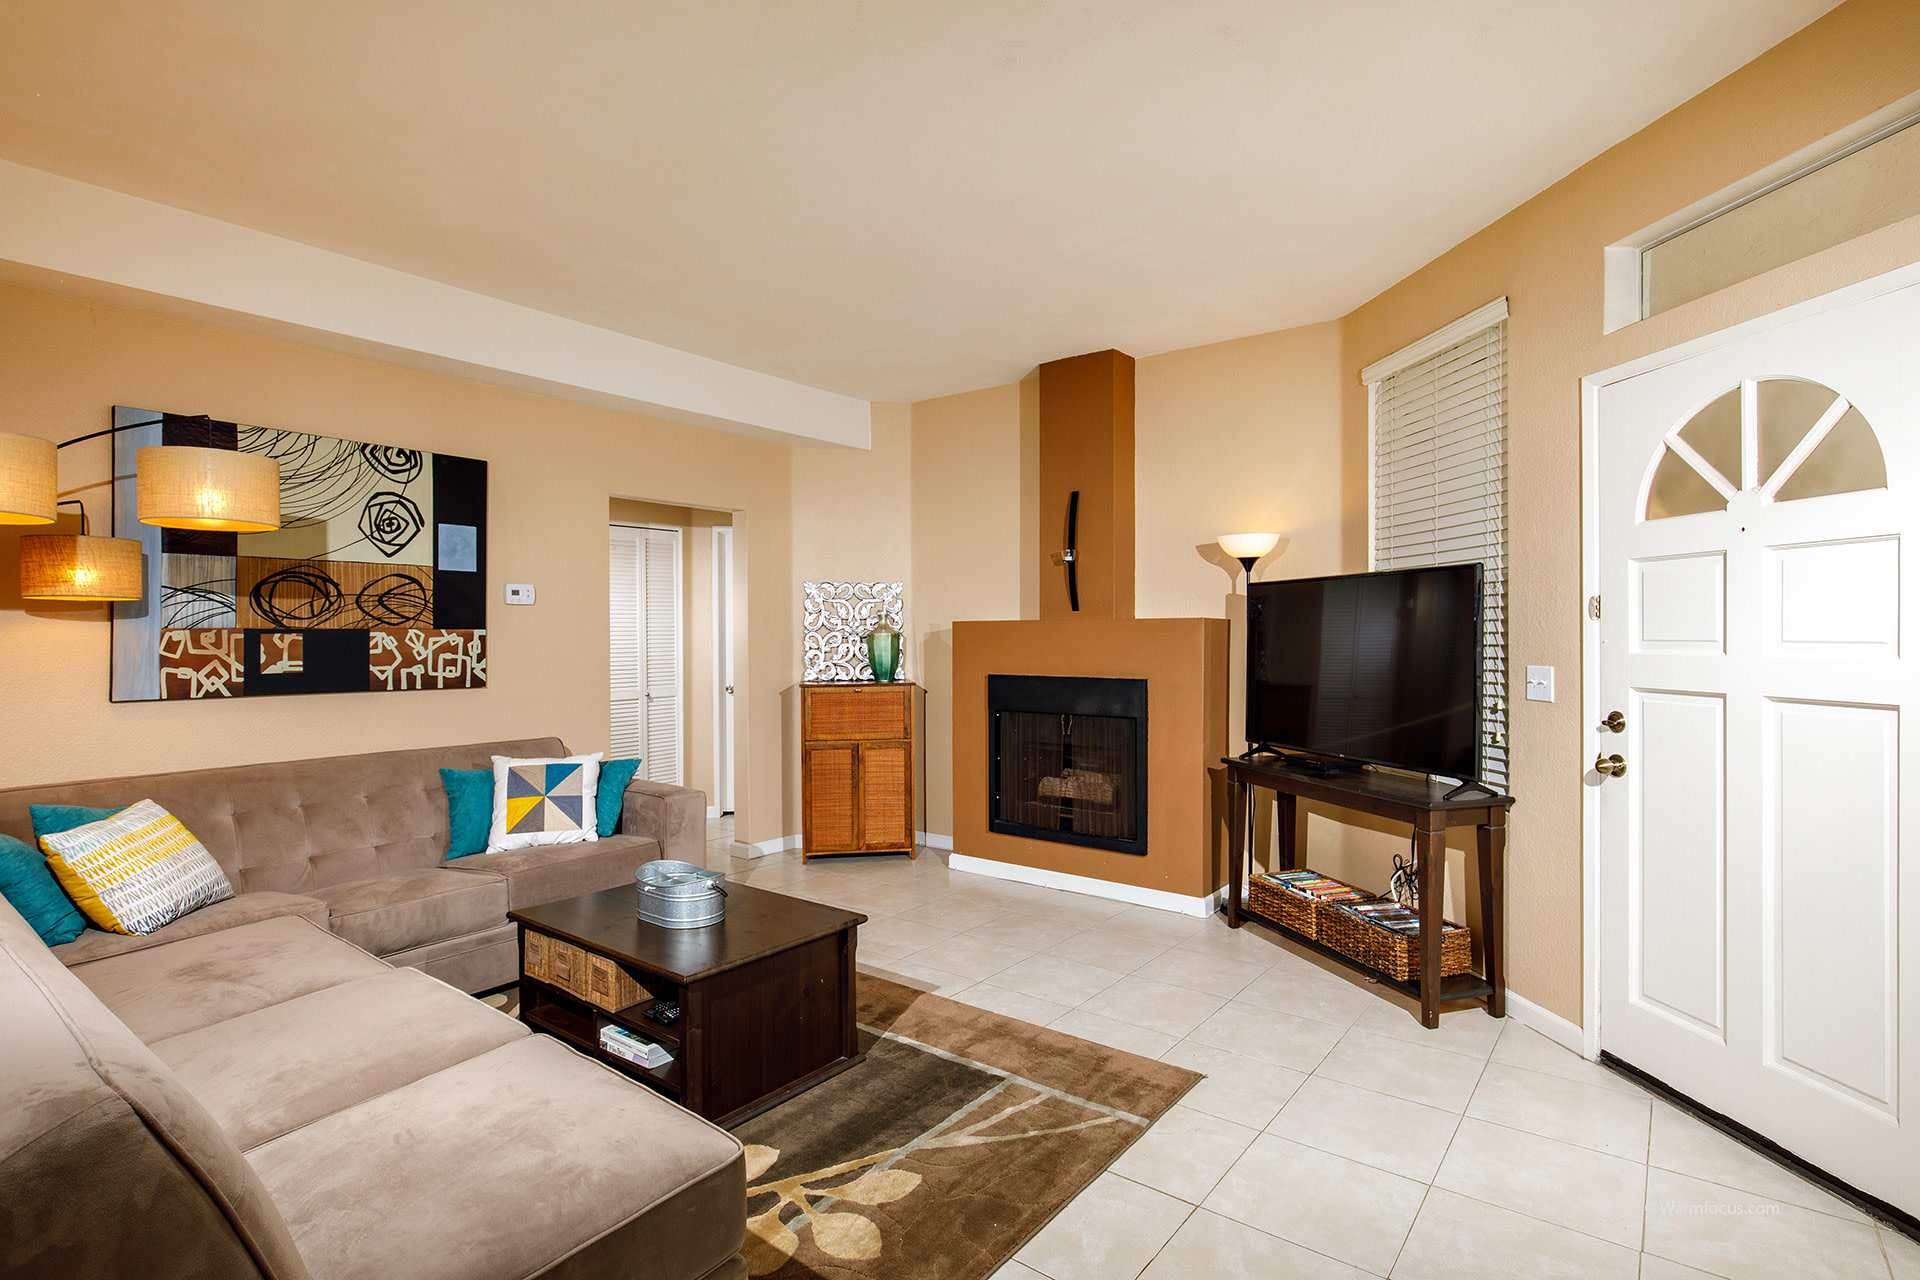 20 best apartments in mira mesa san diego ca with pics rh apartmentlist com